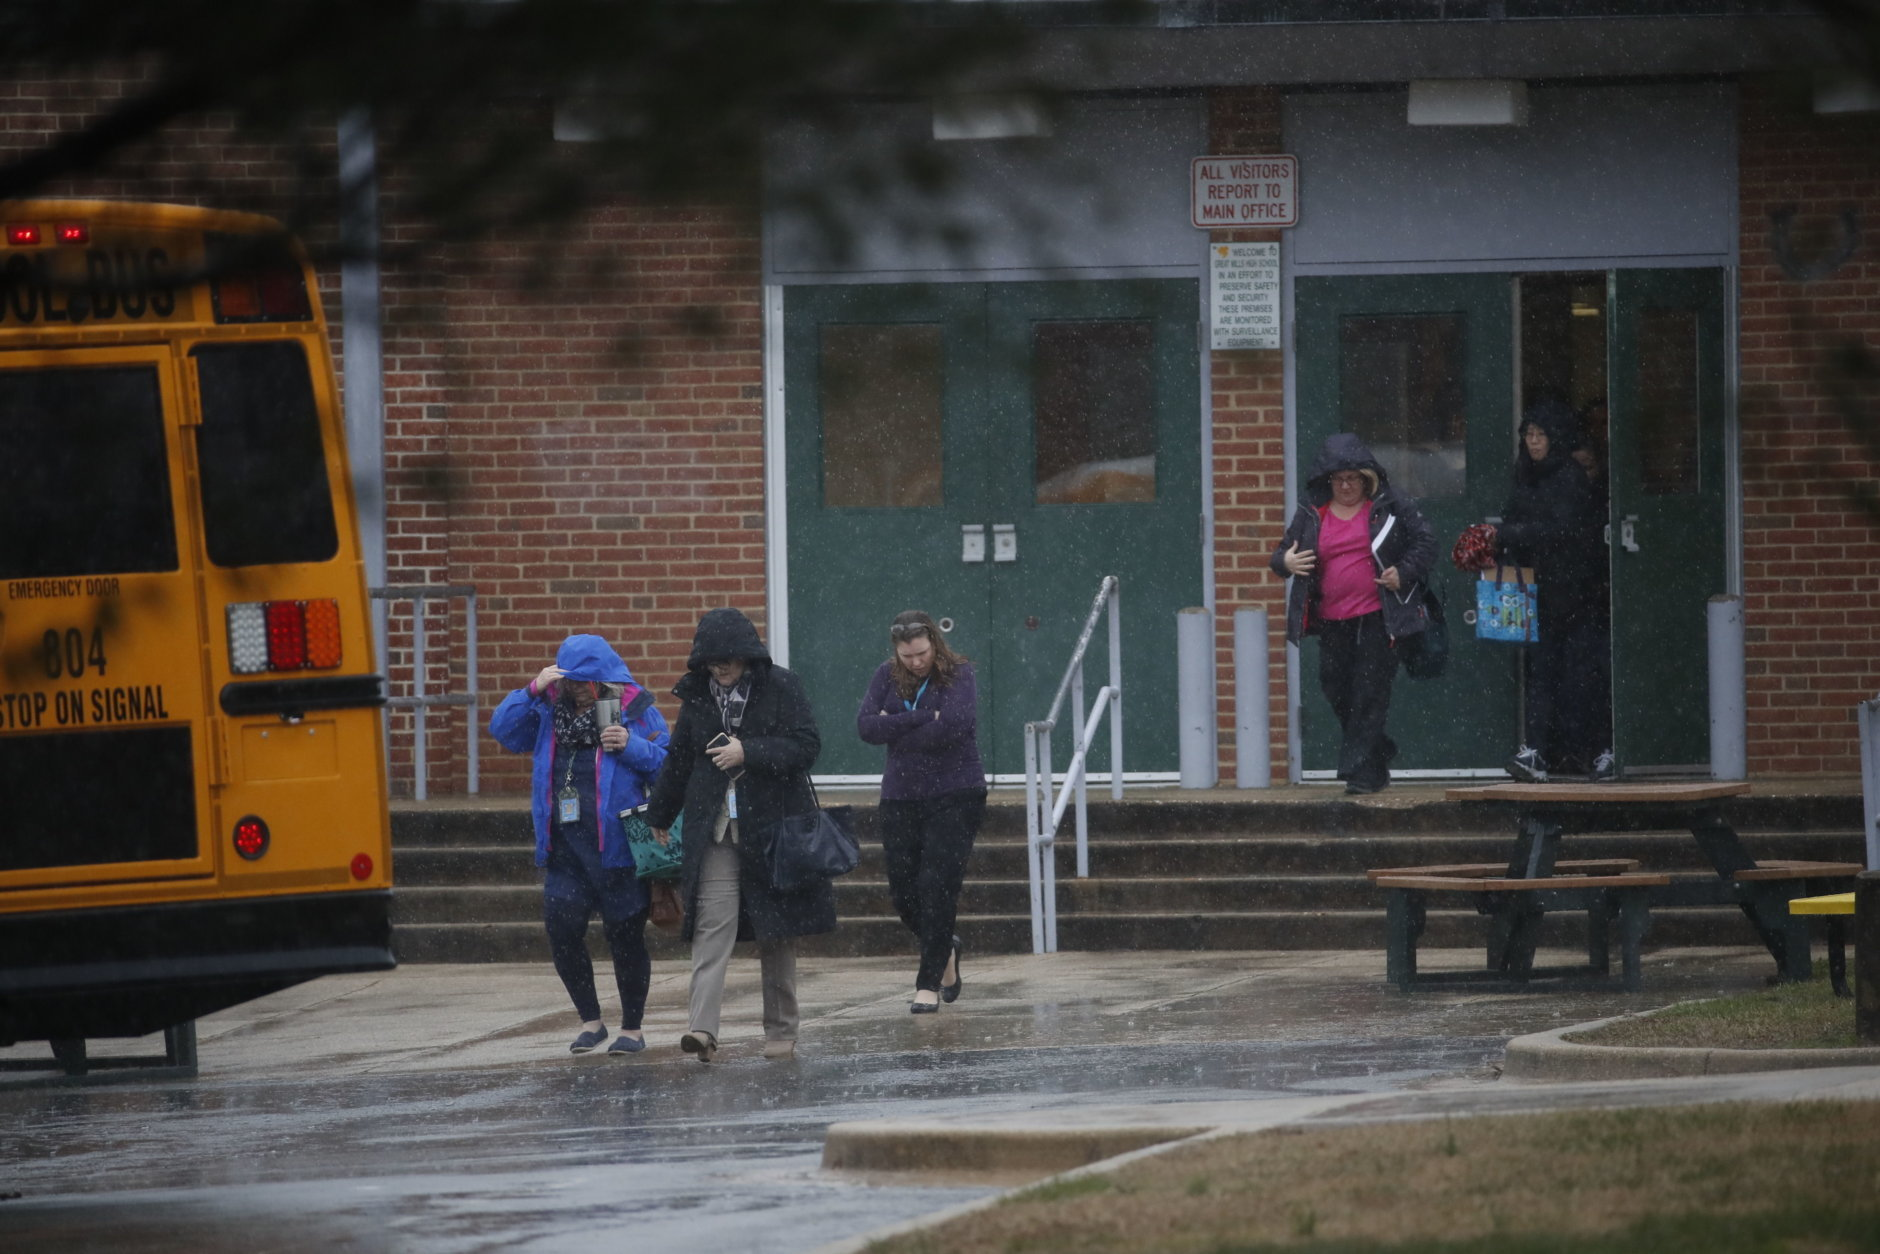 Teachers and school employees depart Great Mills High School, the scene of a shooting, Tuesday, March 20, 2018 in Great Mills, Md.  A teenager wounded a girl and a boy inside his Maryland high school Tuesday before an armed school resource officer was able to intervene, and each of them fired one more round as the shooter was fatally wounded, a sheriff said.  St. Mary's County Sheriff Tim Cameron said the student with the handgun was declared dead at a hospital, and the other two students were in critical condition. He said the officer was not harmed.  (AP Photo/Alex Brandon)